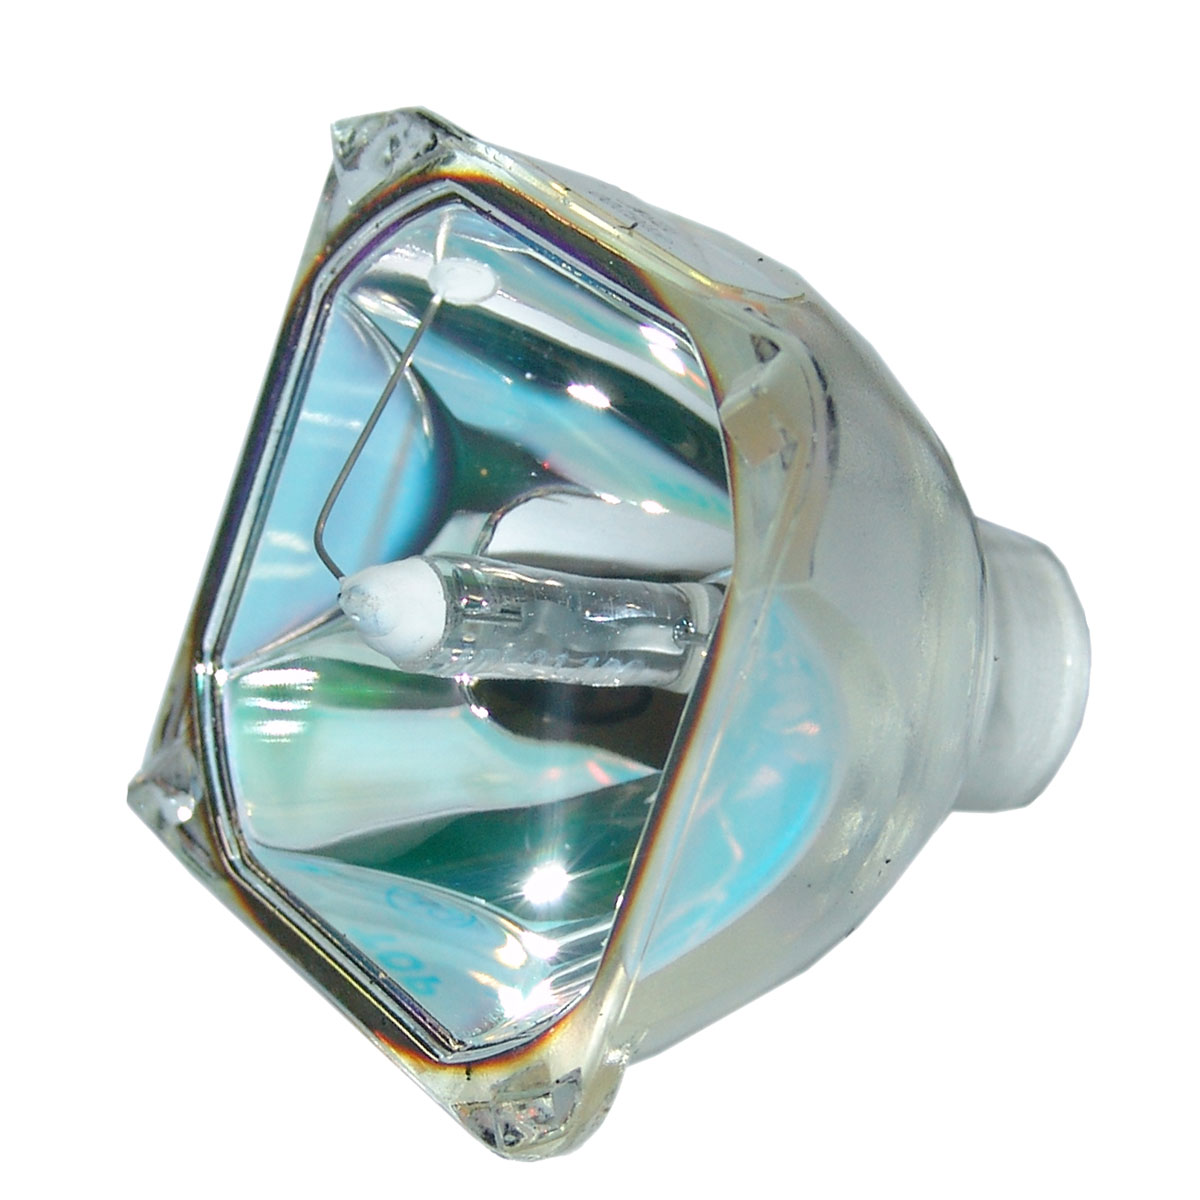 Lutema Economy Bulb for Panasonic PT-LM1E Projector (Lamp with Housing) - image 5 of 5